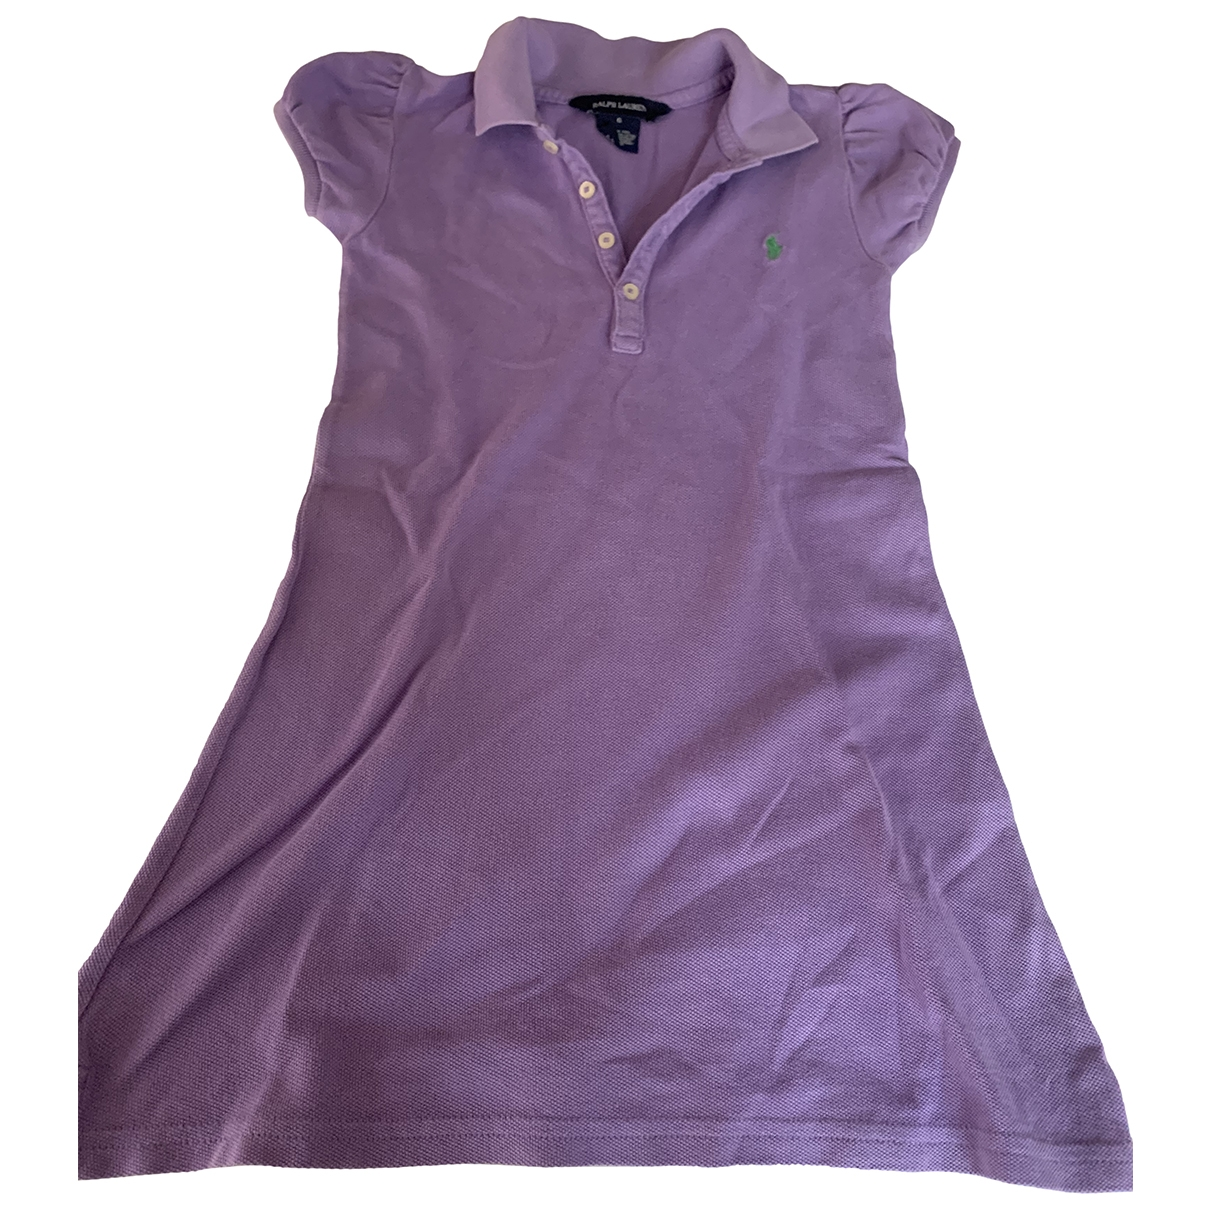 Polo Ralph Lauren \N Purple Cotton dress for Kids 6 years - up to 114cm FR